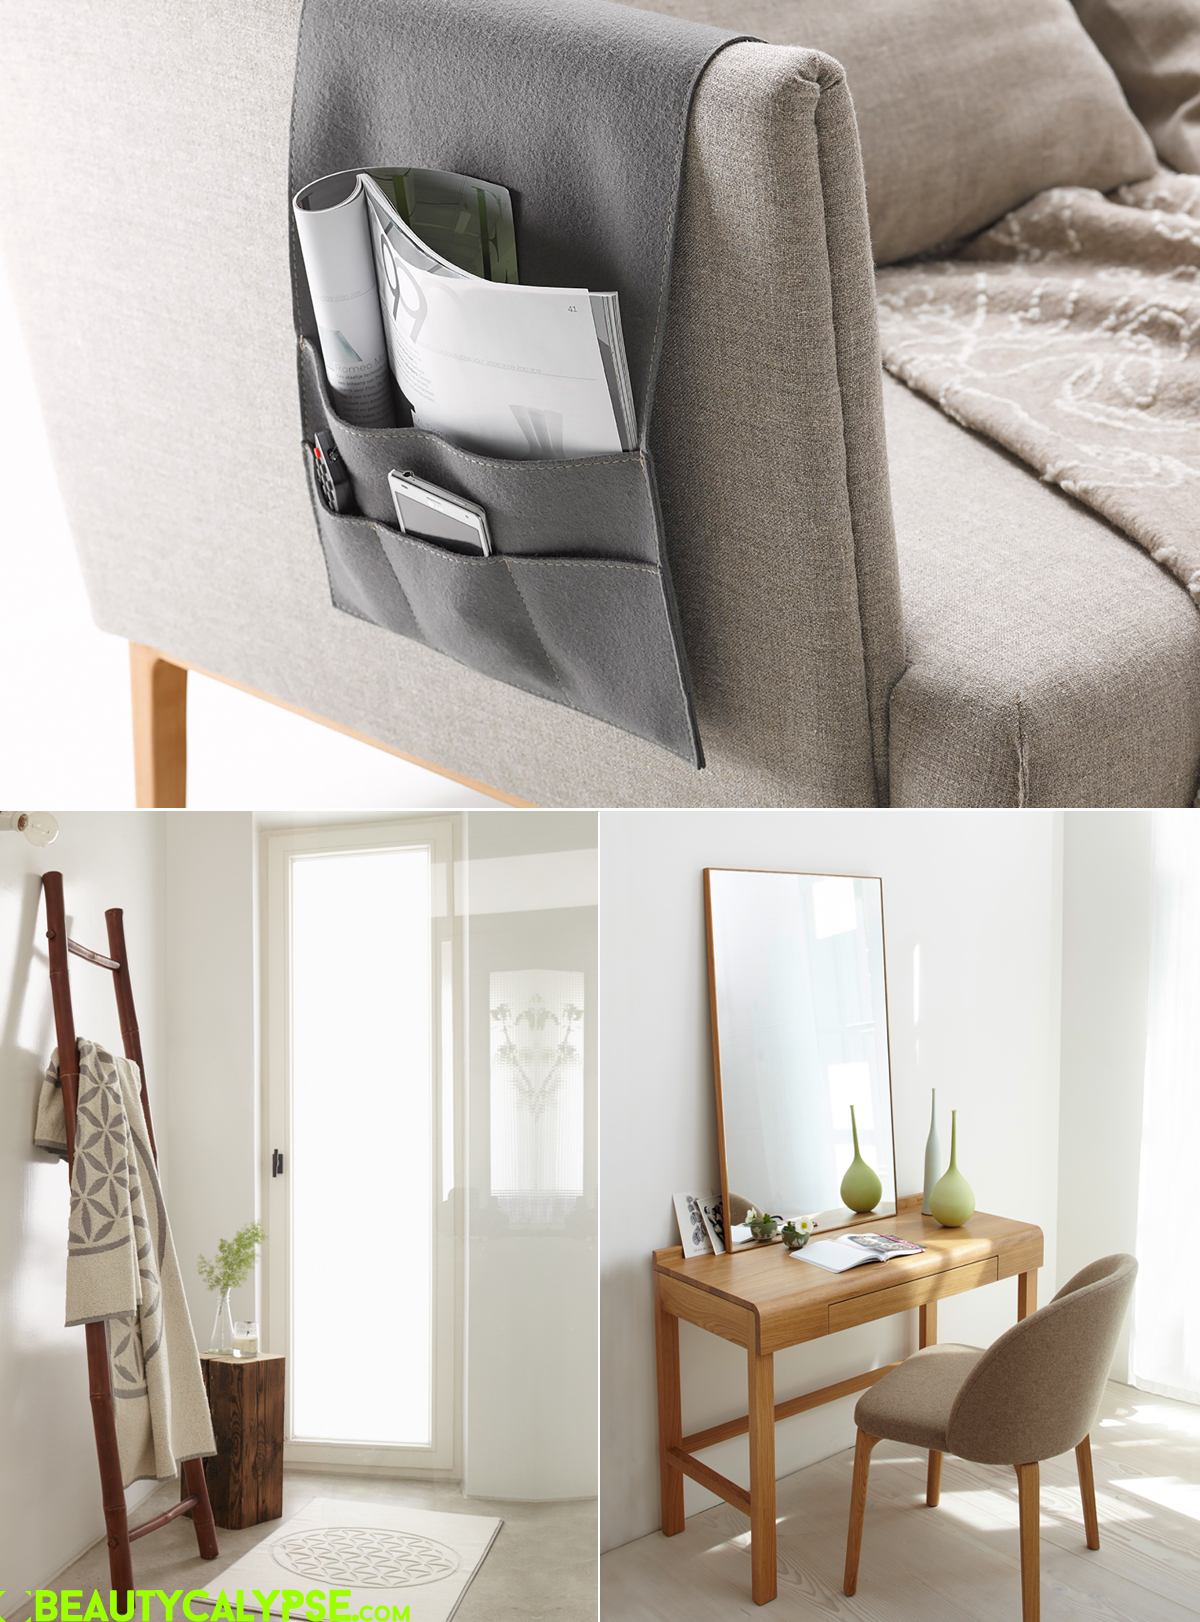 favourites eco fair home yoga textiles living ethical. Black Bedroom Furniture Sets. Home Design Ideas